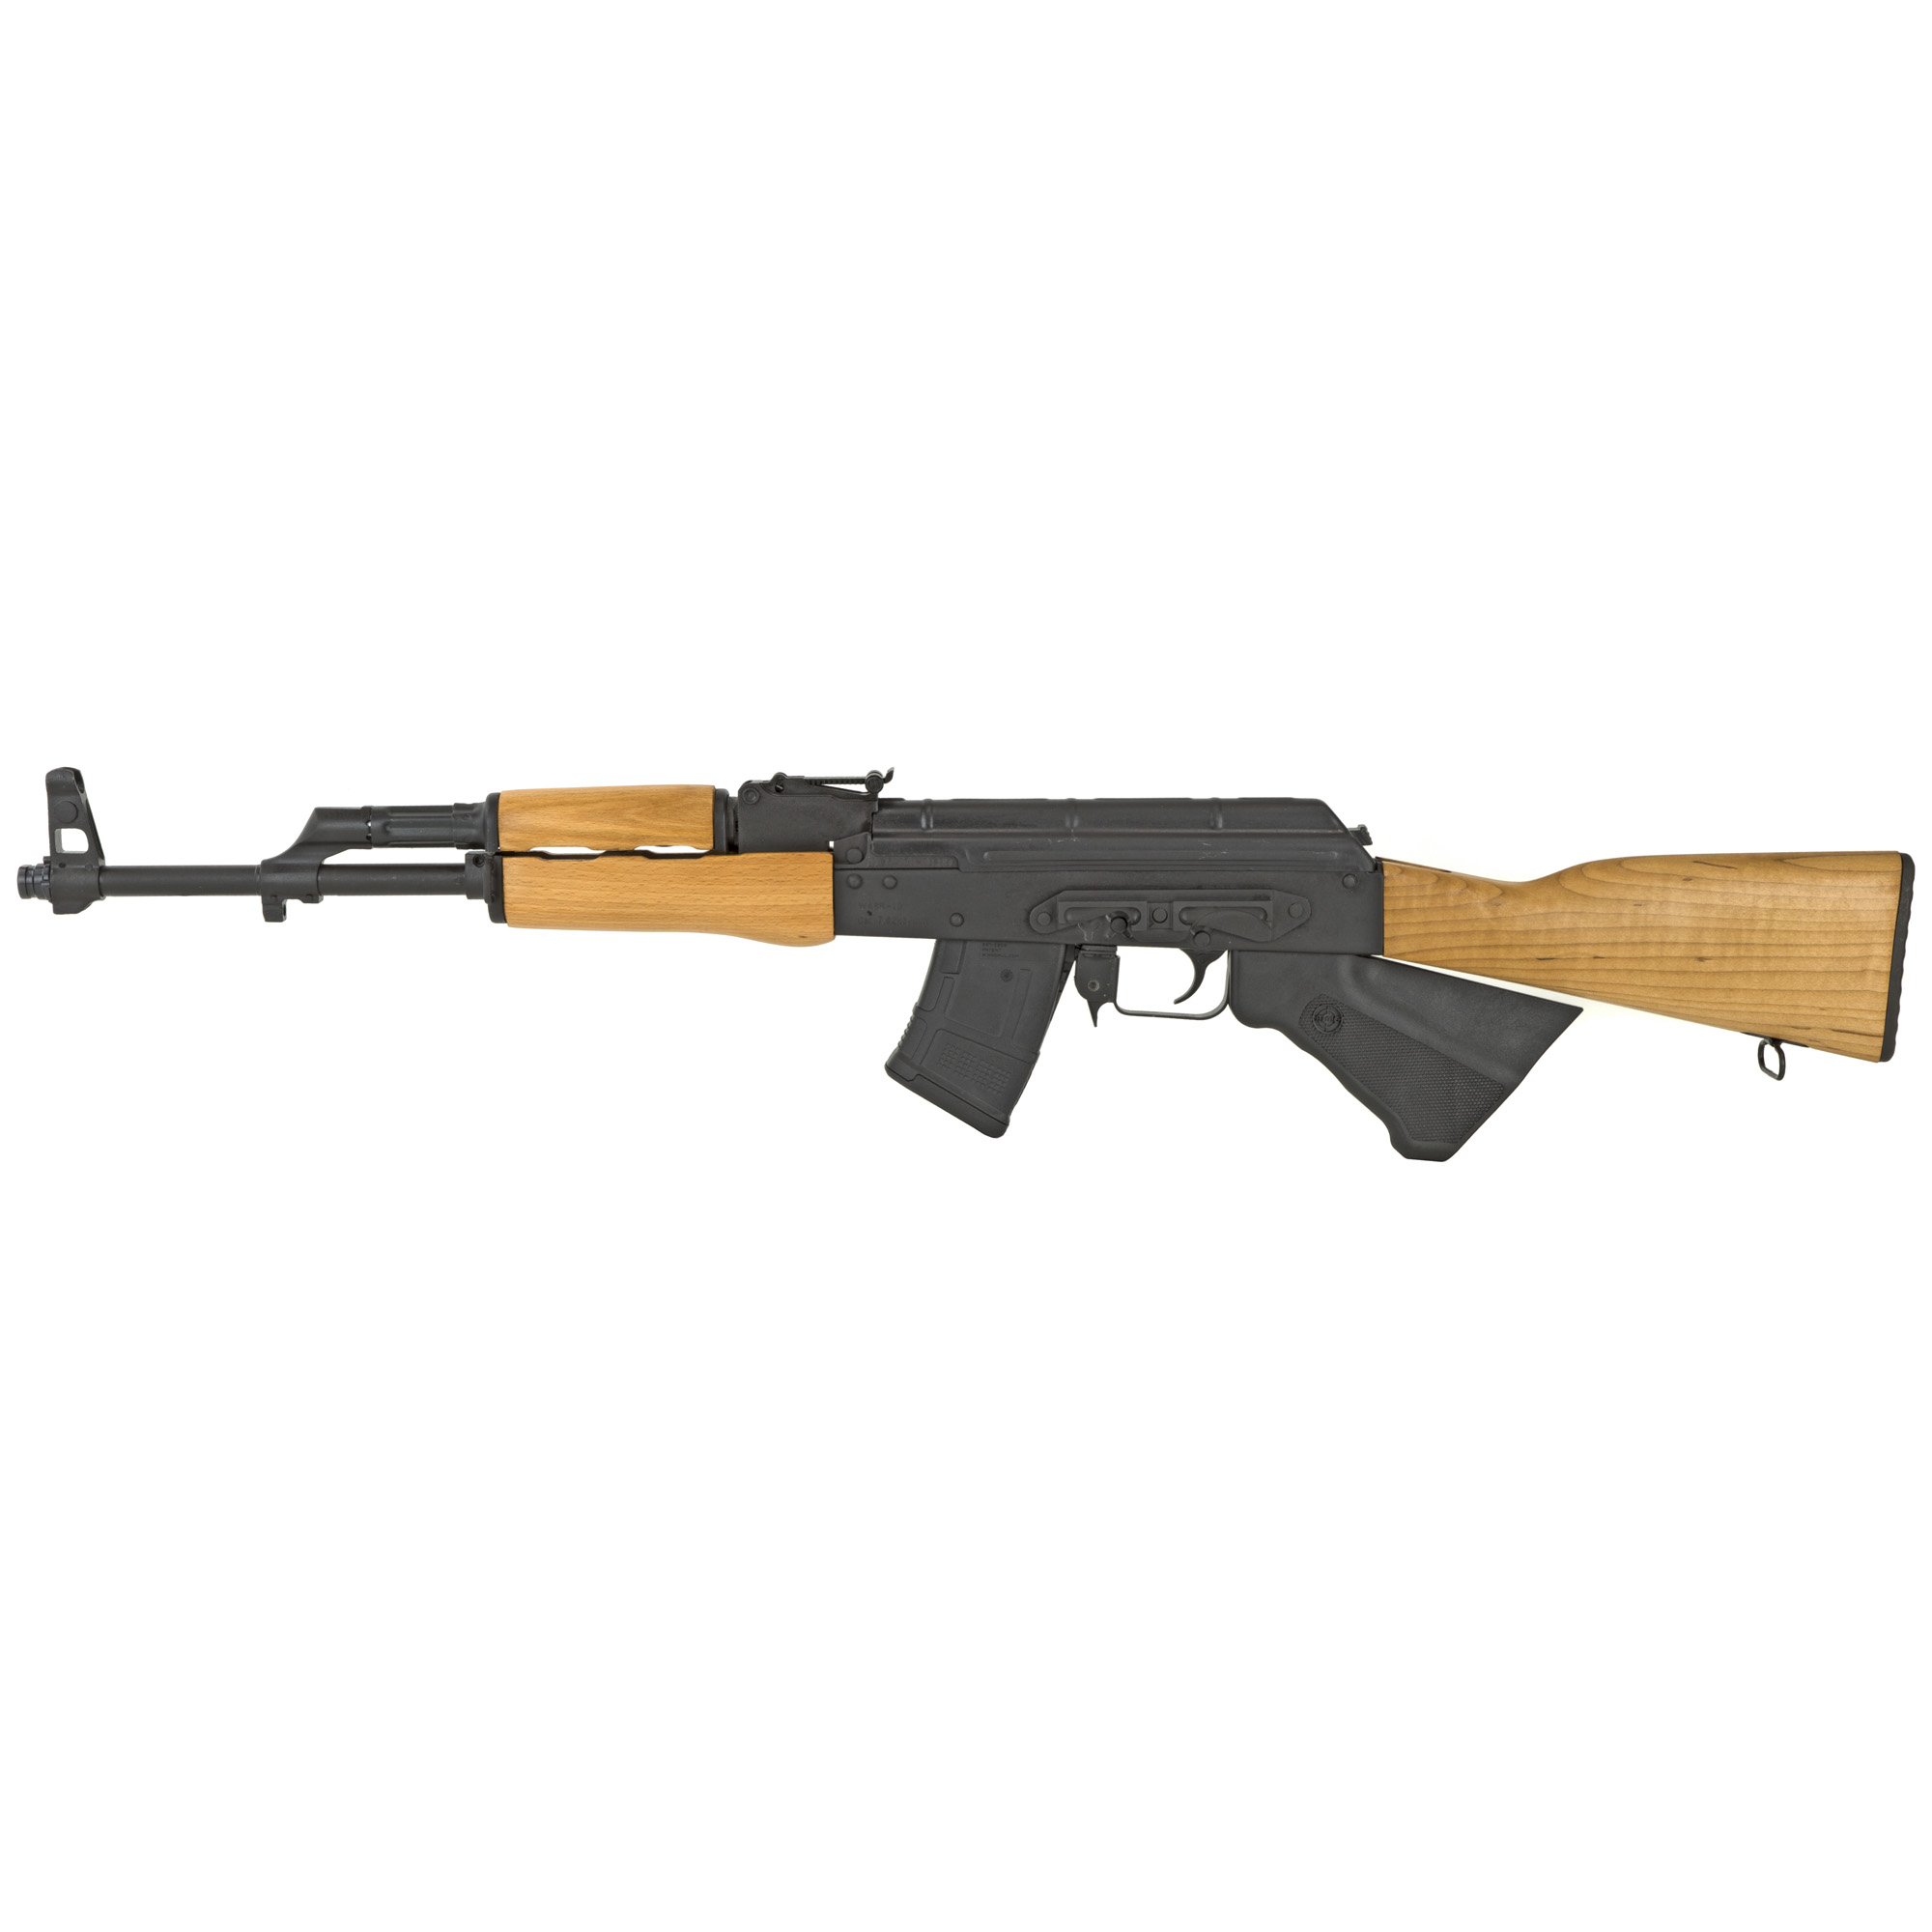 """This is the California-compliant version of the Romanian WASR rifle. It features a chrome-lined hammer forged barrel"""" stamped receiver"""" side mount scope rail and RAK-1 Enhanced Trigger Group."""